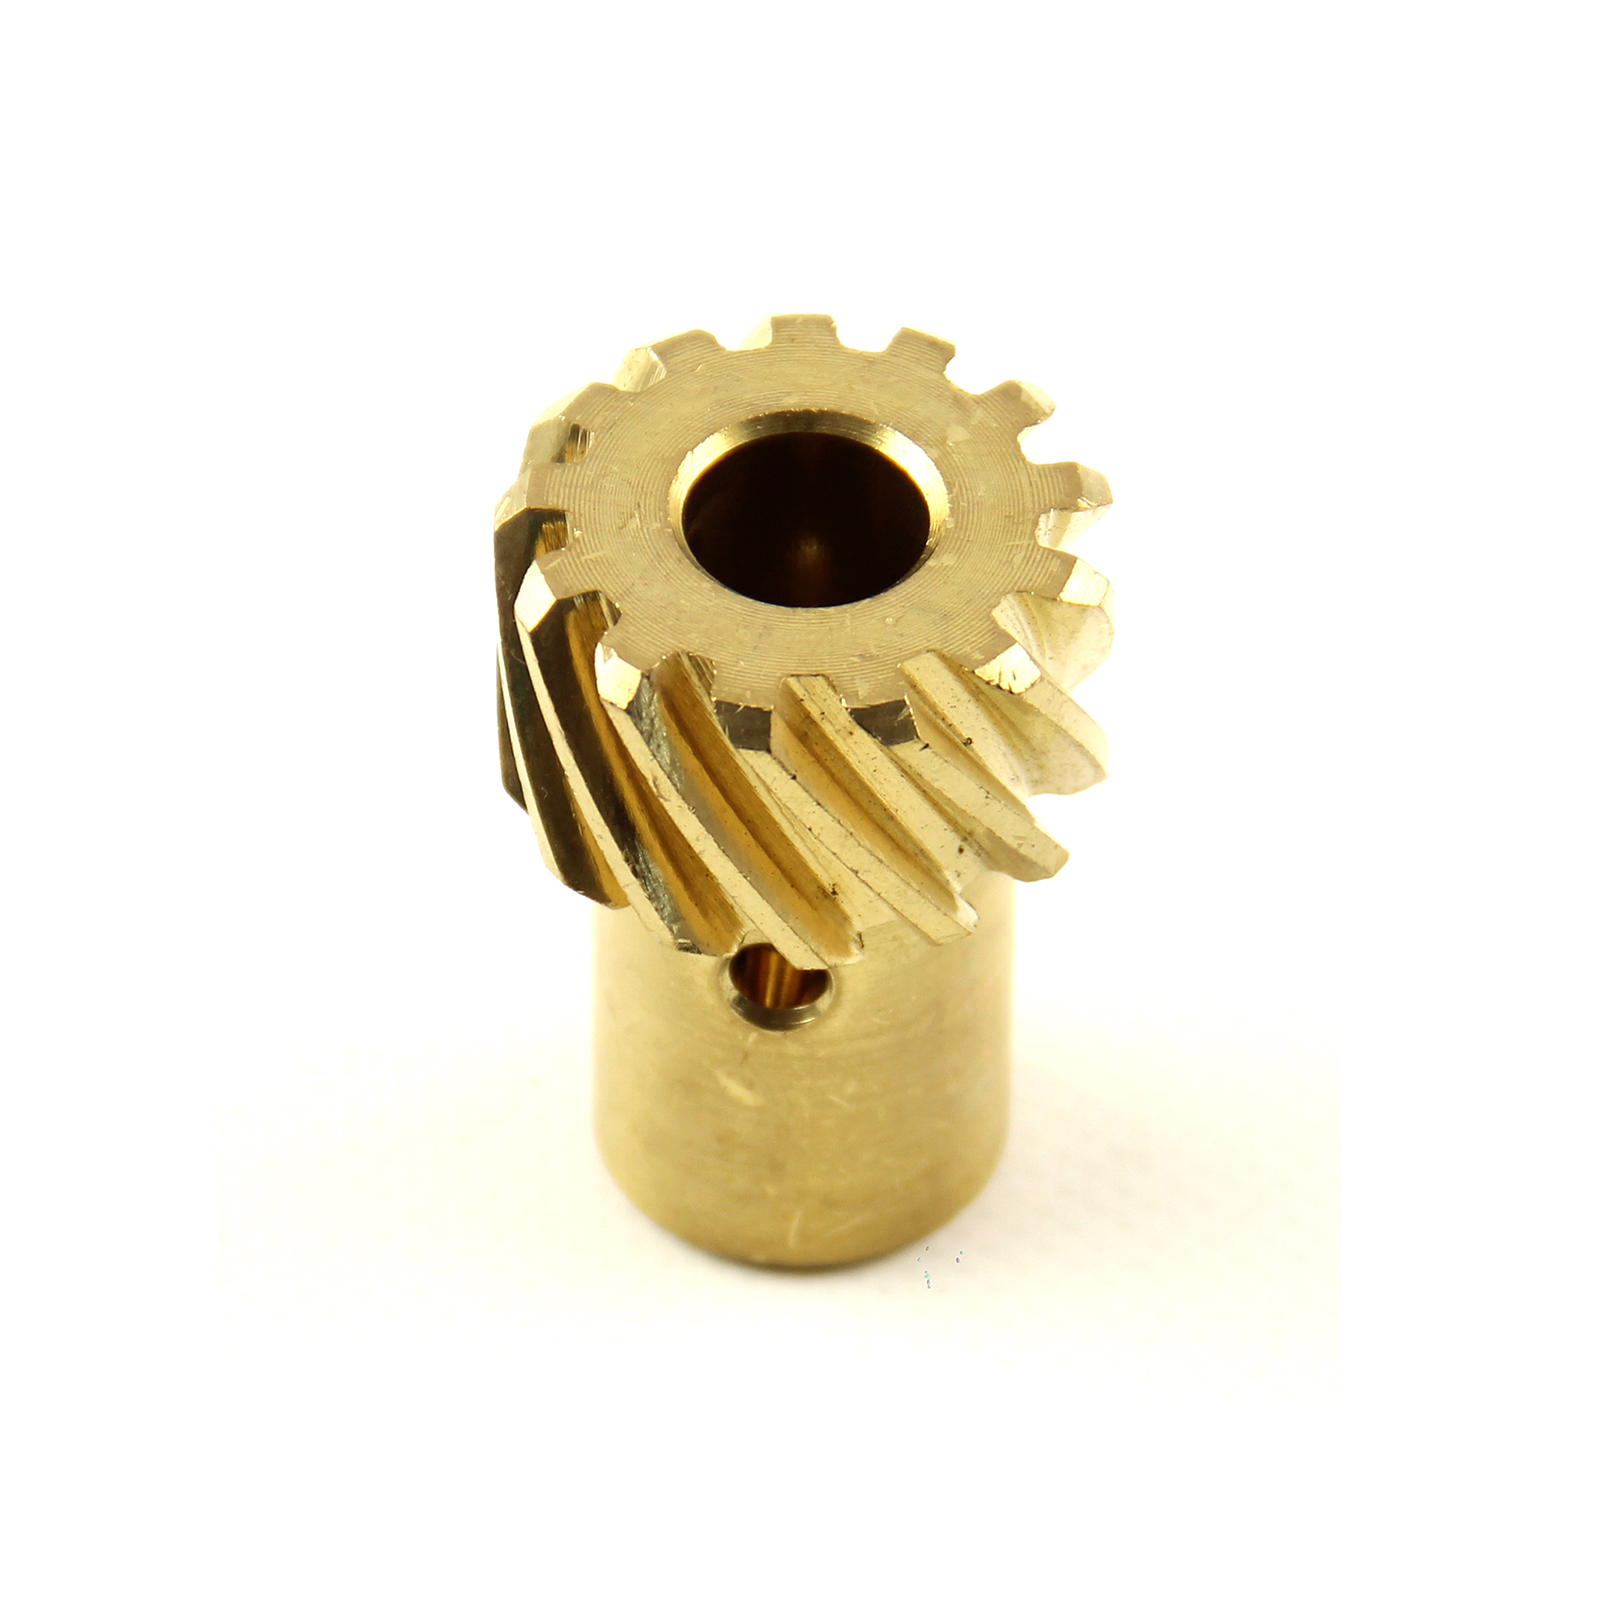 "Chevy SBC 350 BBC 454 Bronze 0.500"" Shaft Distributor Gear"